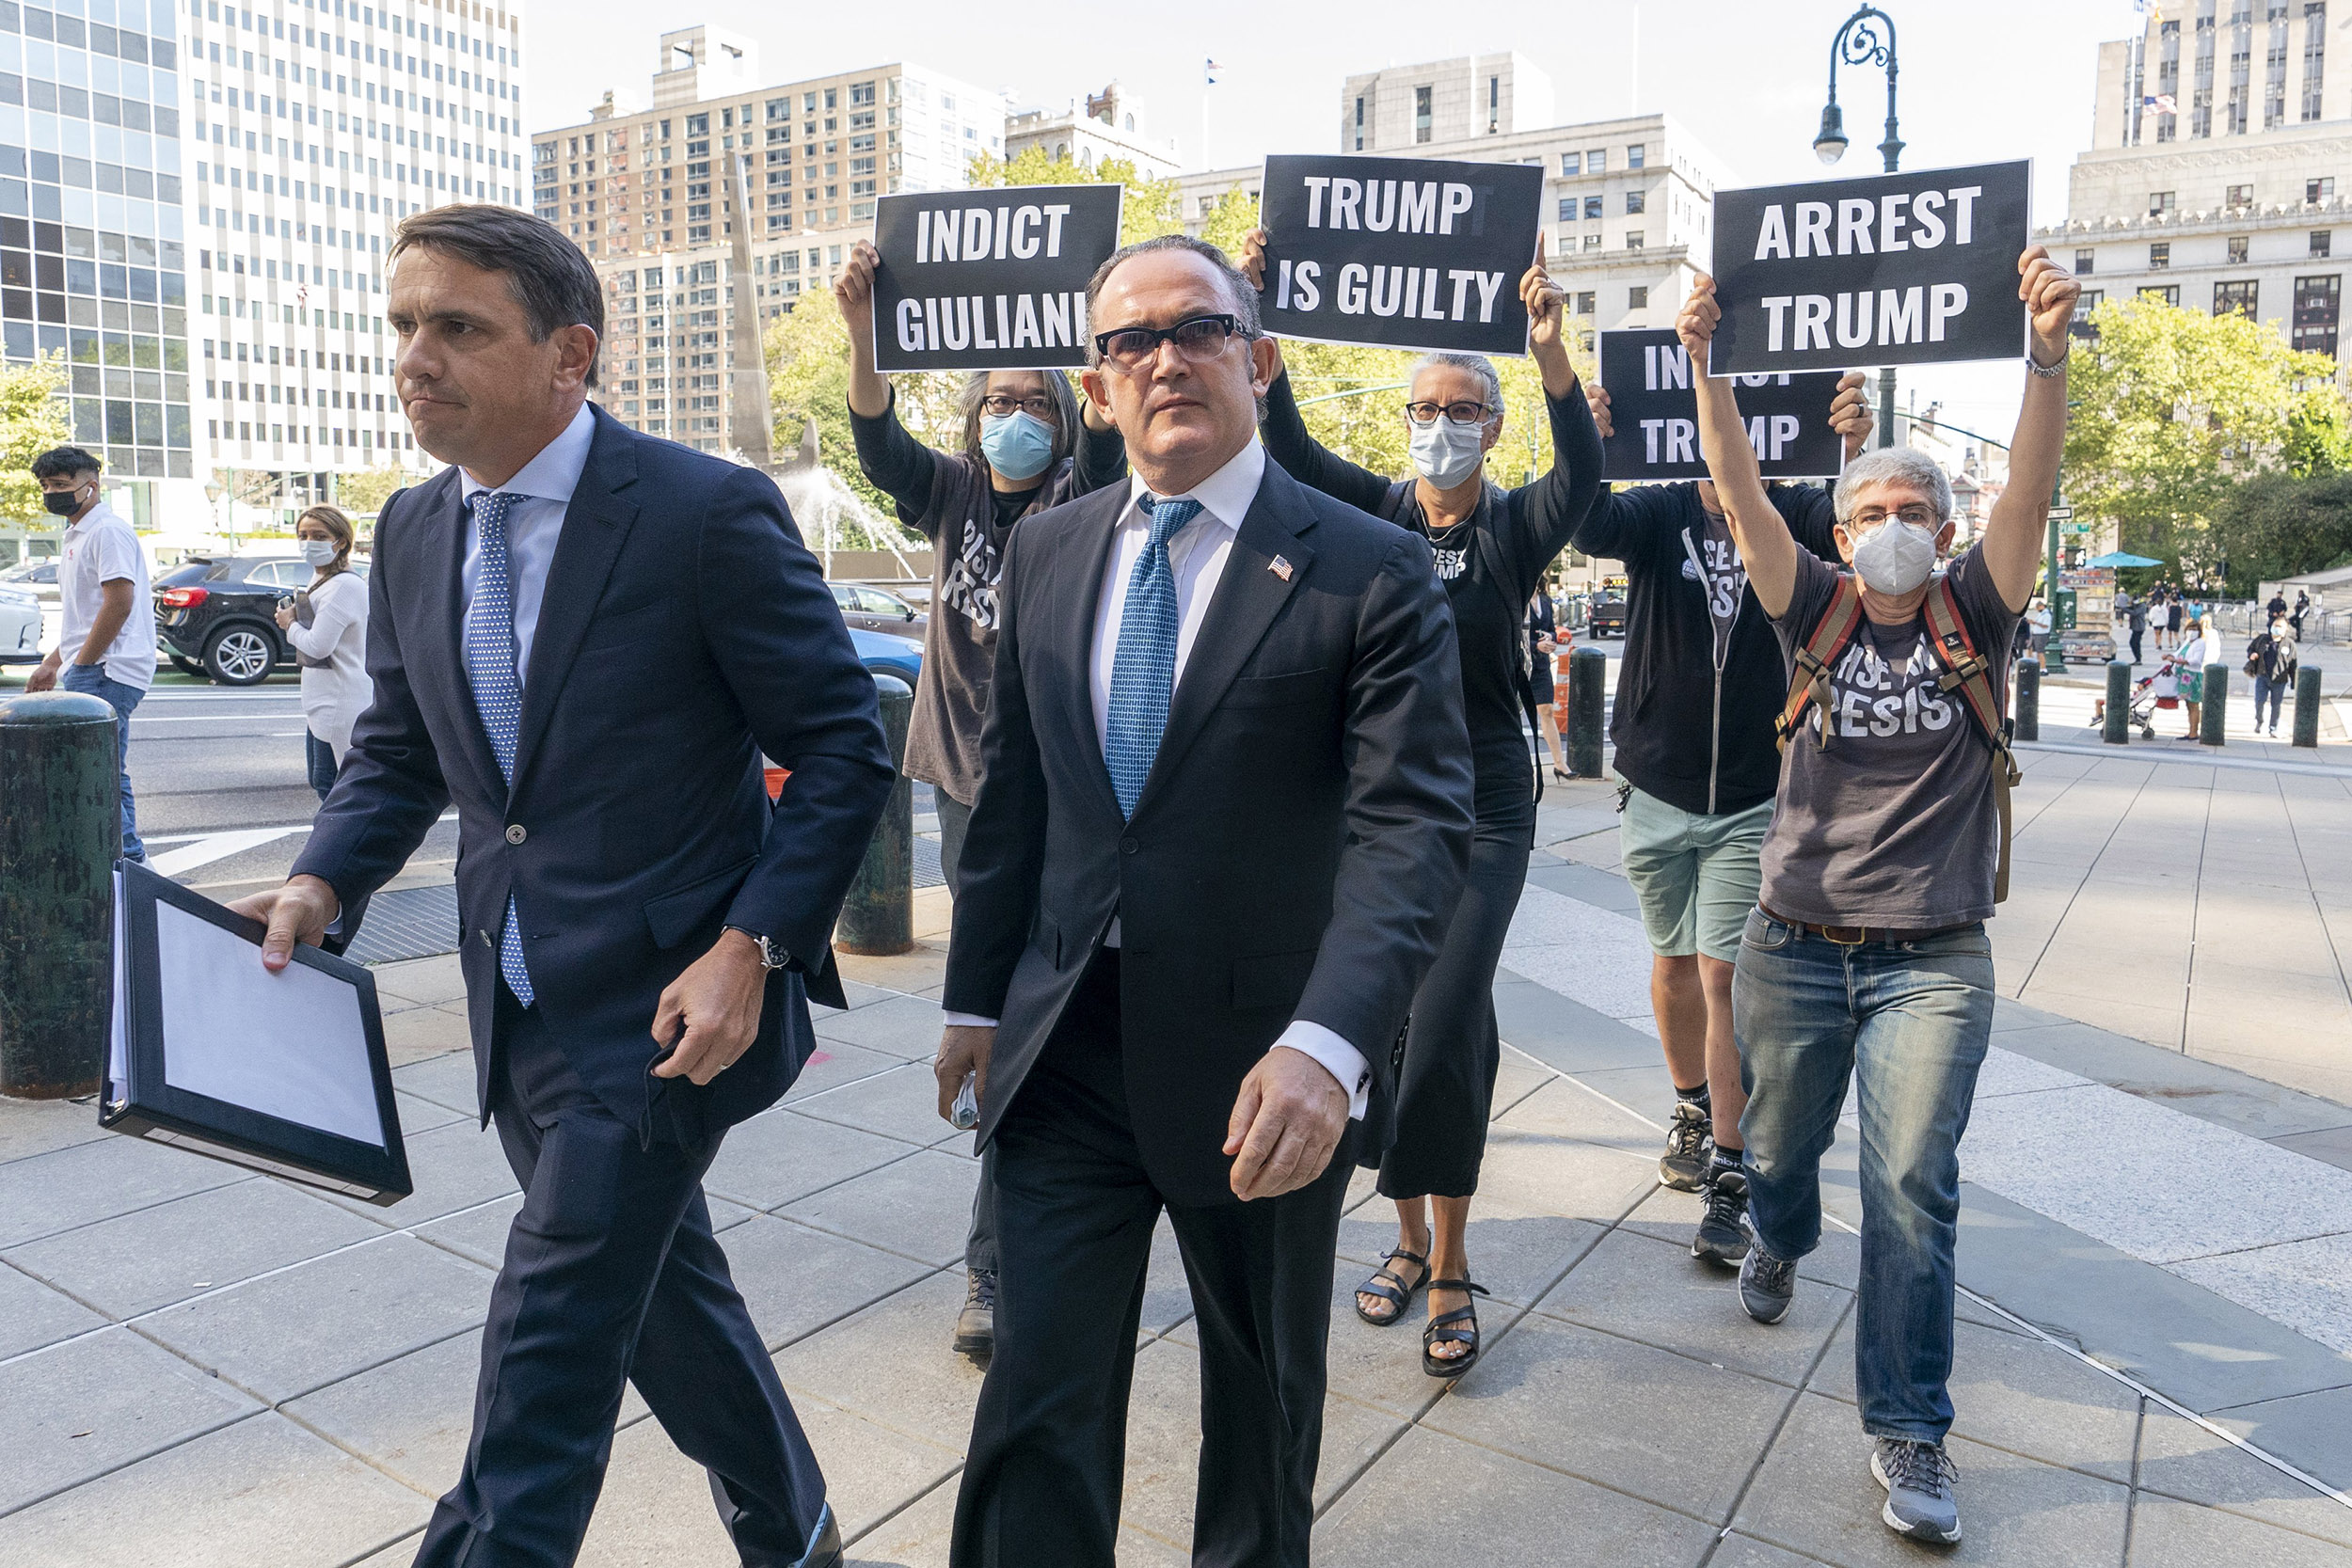 Igor Fruman, former Giuliani associate, pleads guilty to campaign finance charges